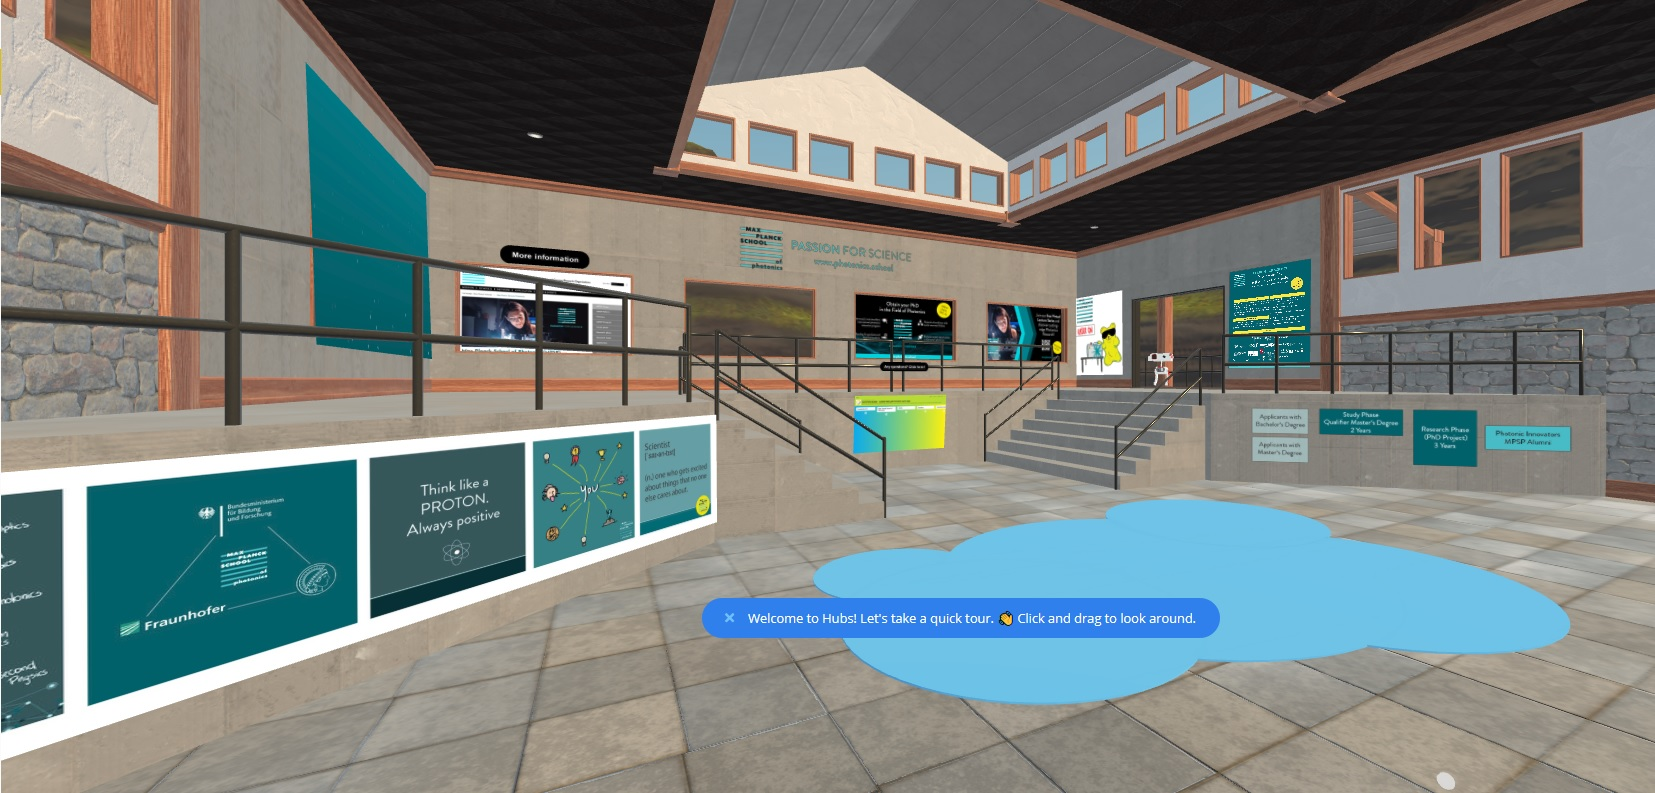 Virtual hall with posters from the Max Planck School of Photonics.